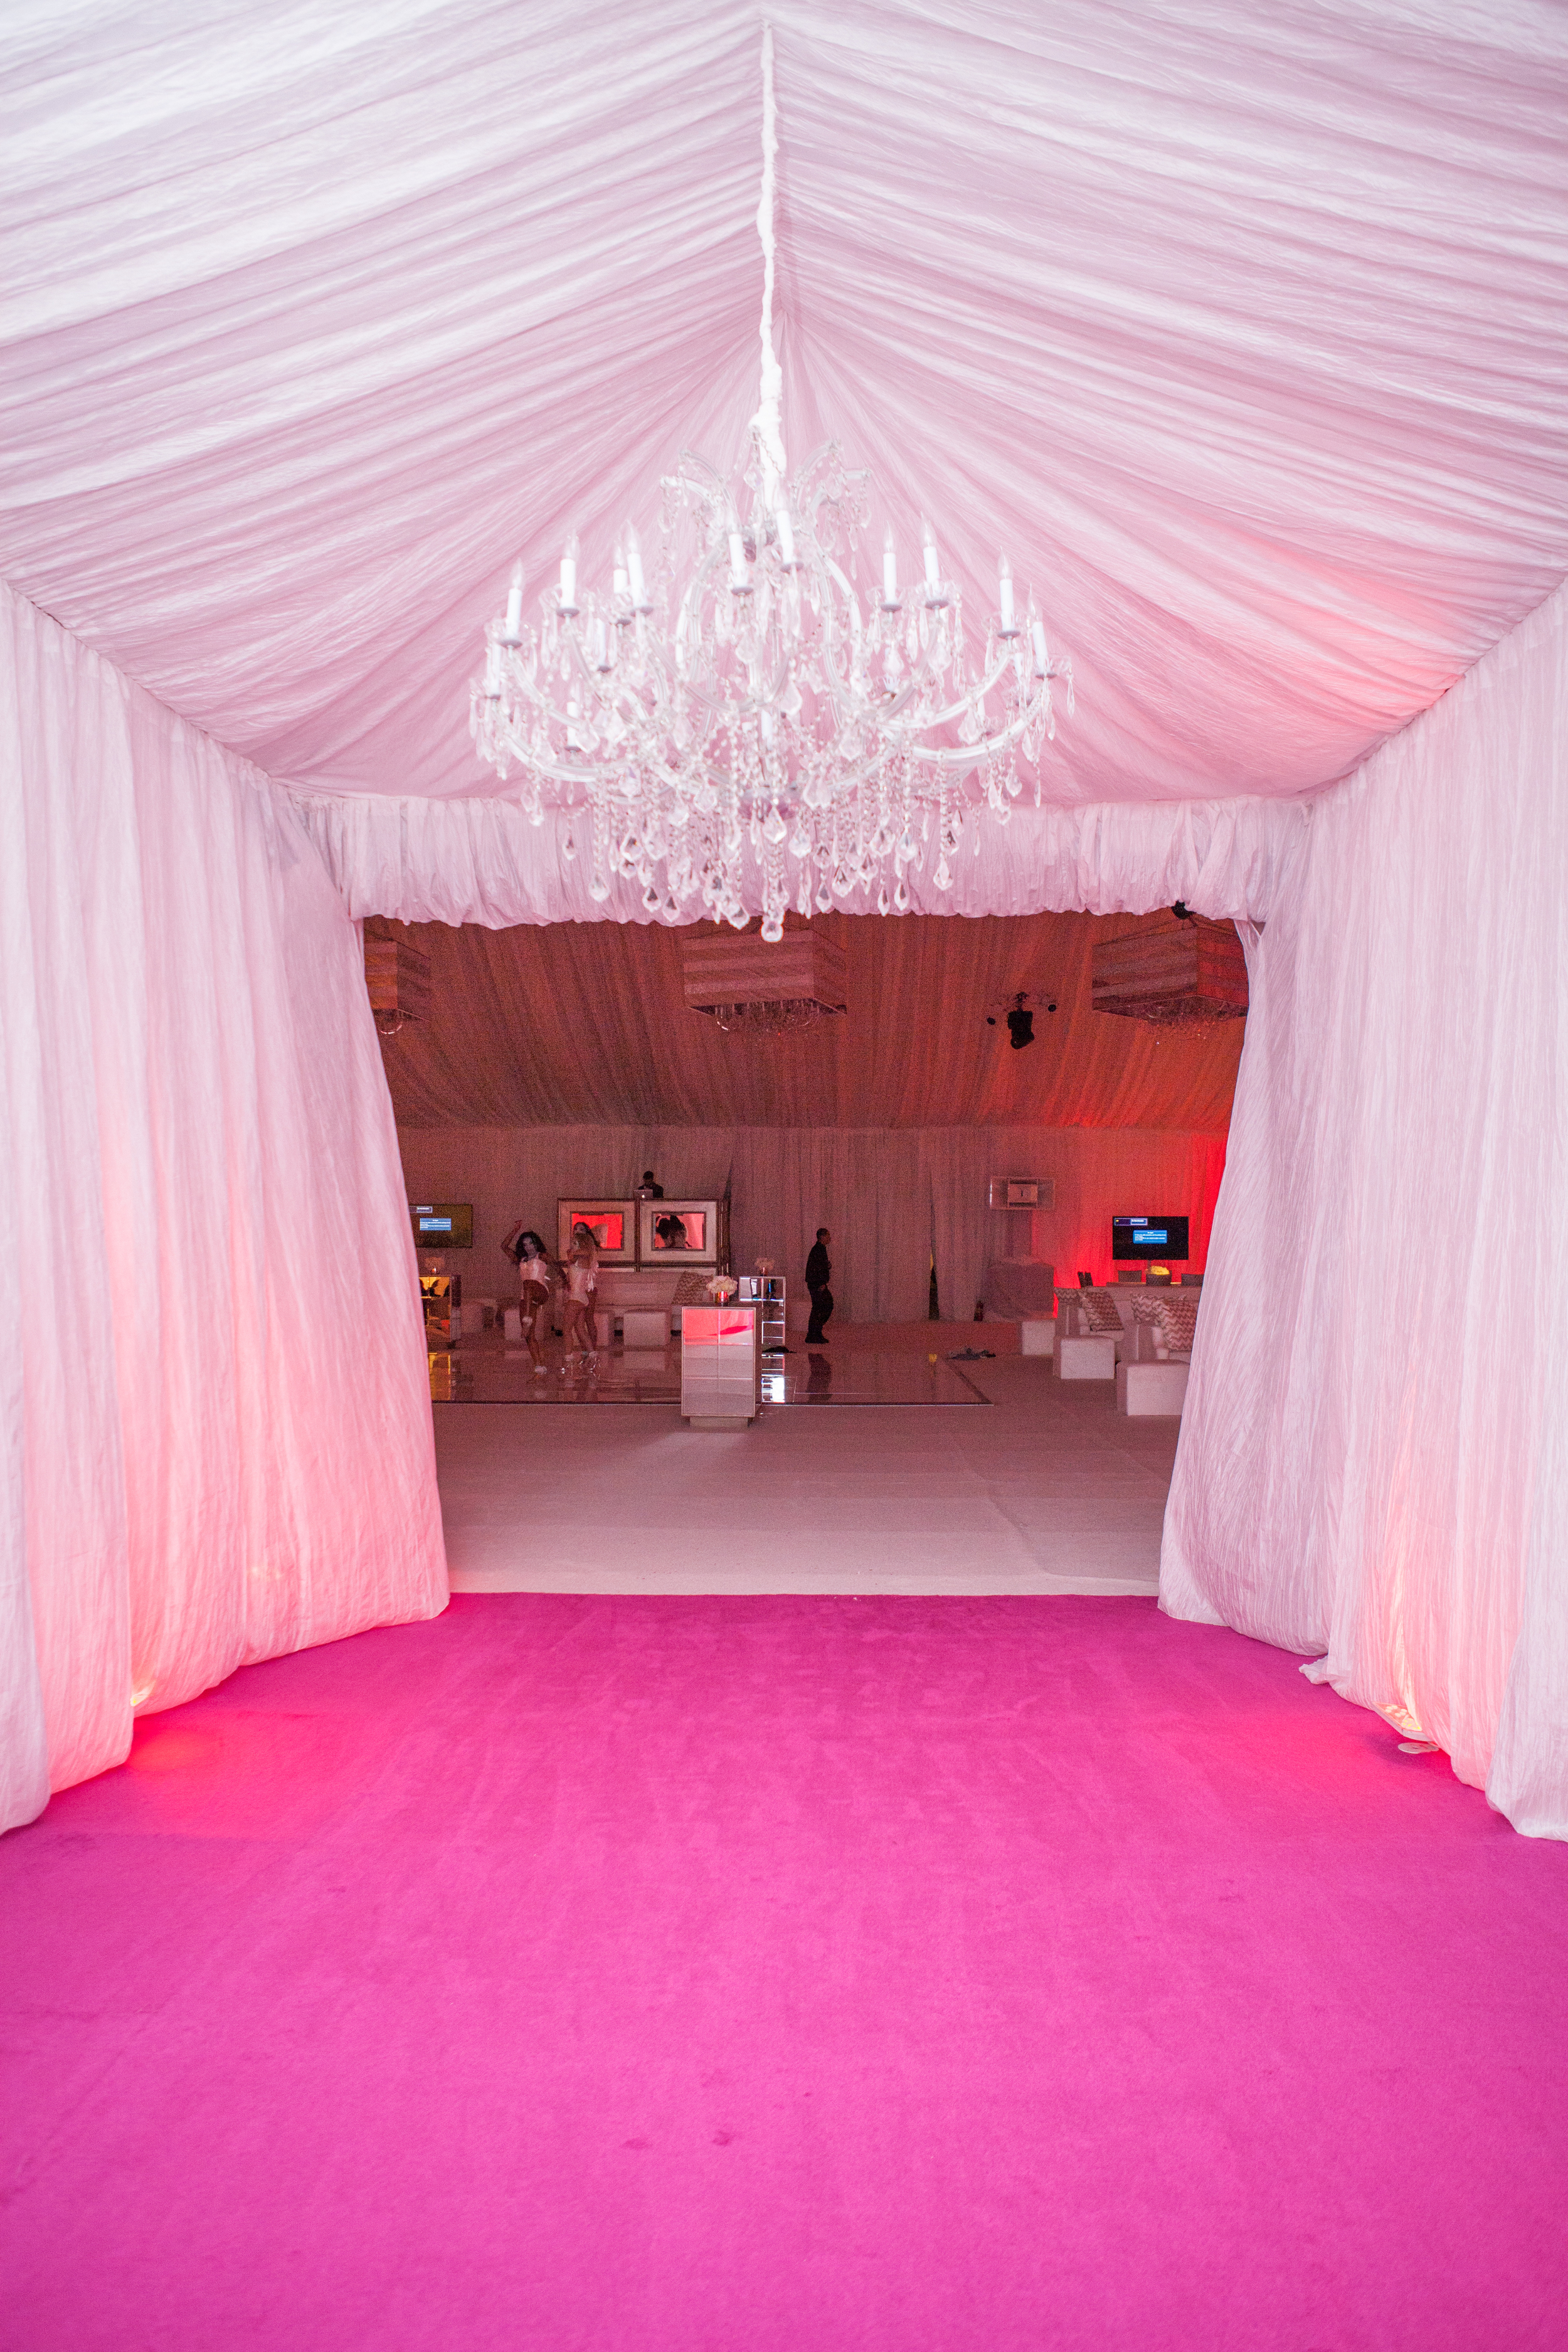 Entrance Tent with Chandelier